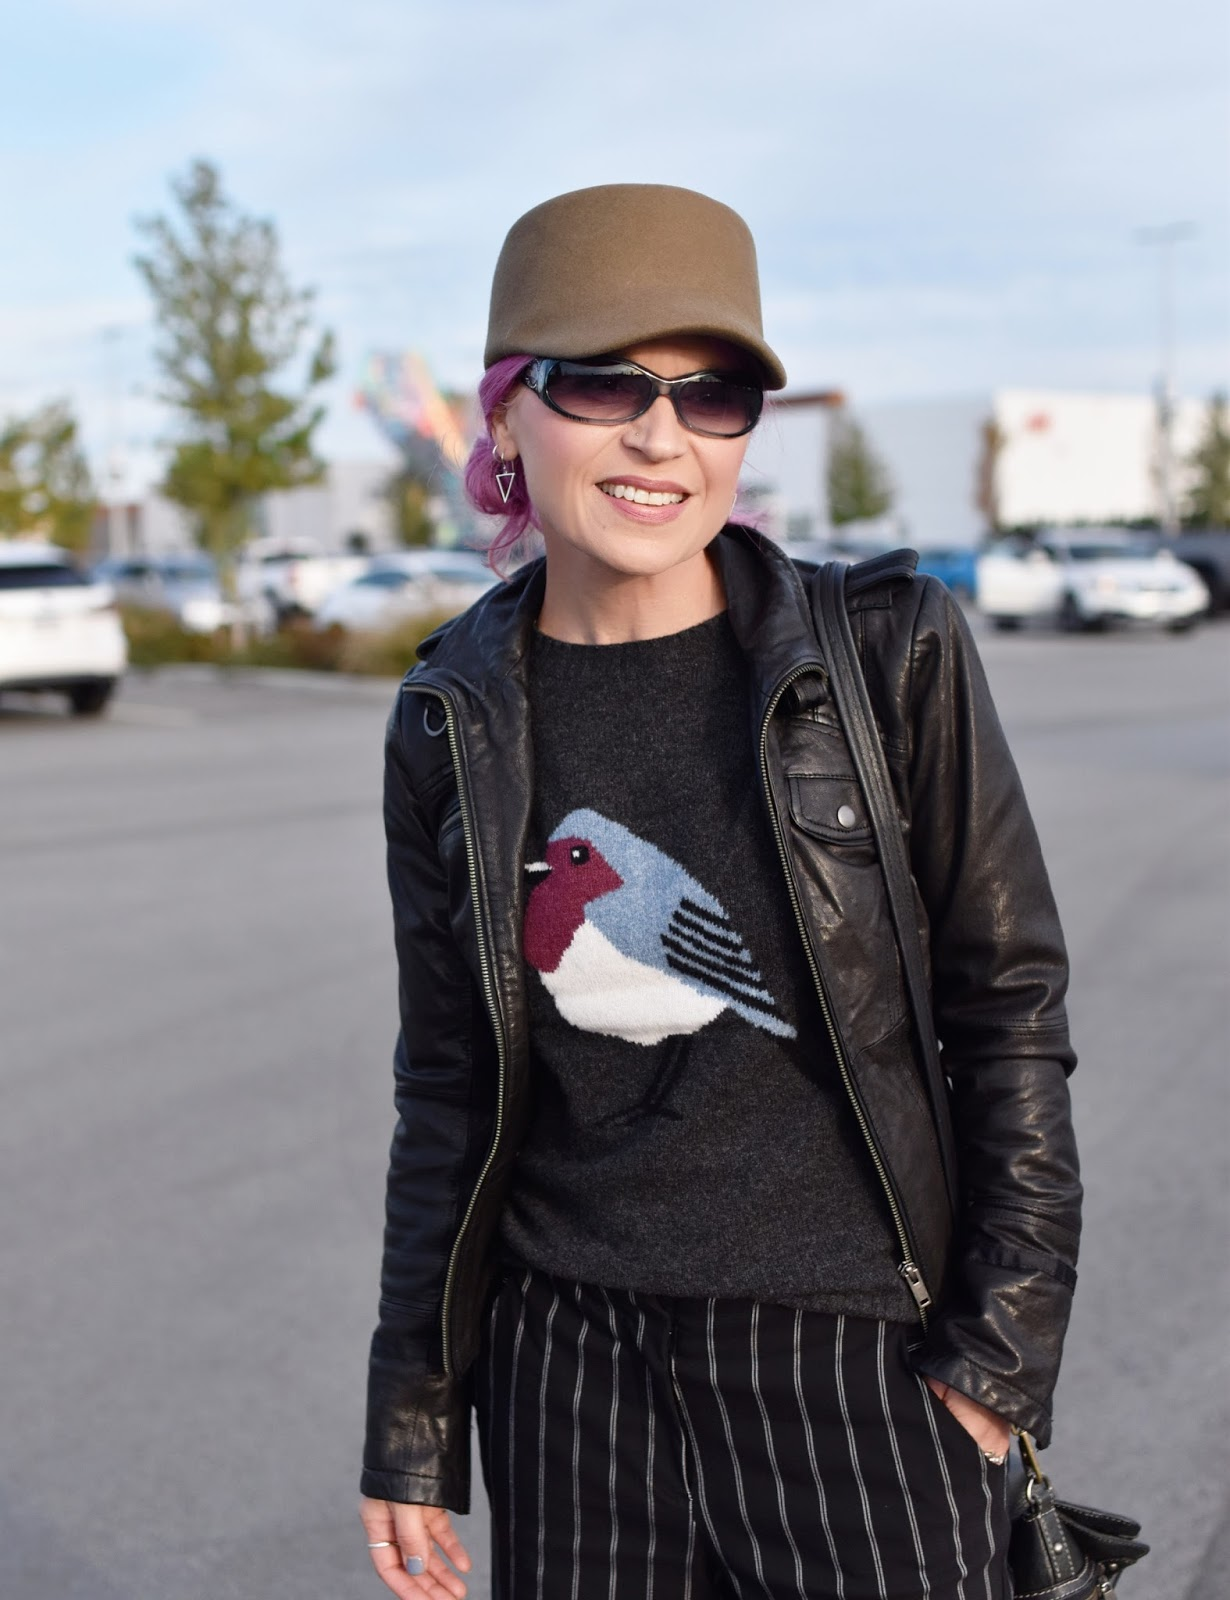 Monika Faulkner outfit inspiration - bird-motif sweater, moto jacket, military-inspired cap